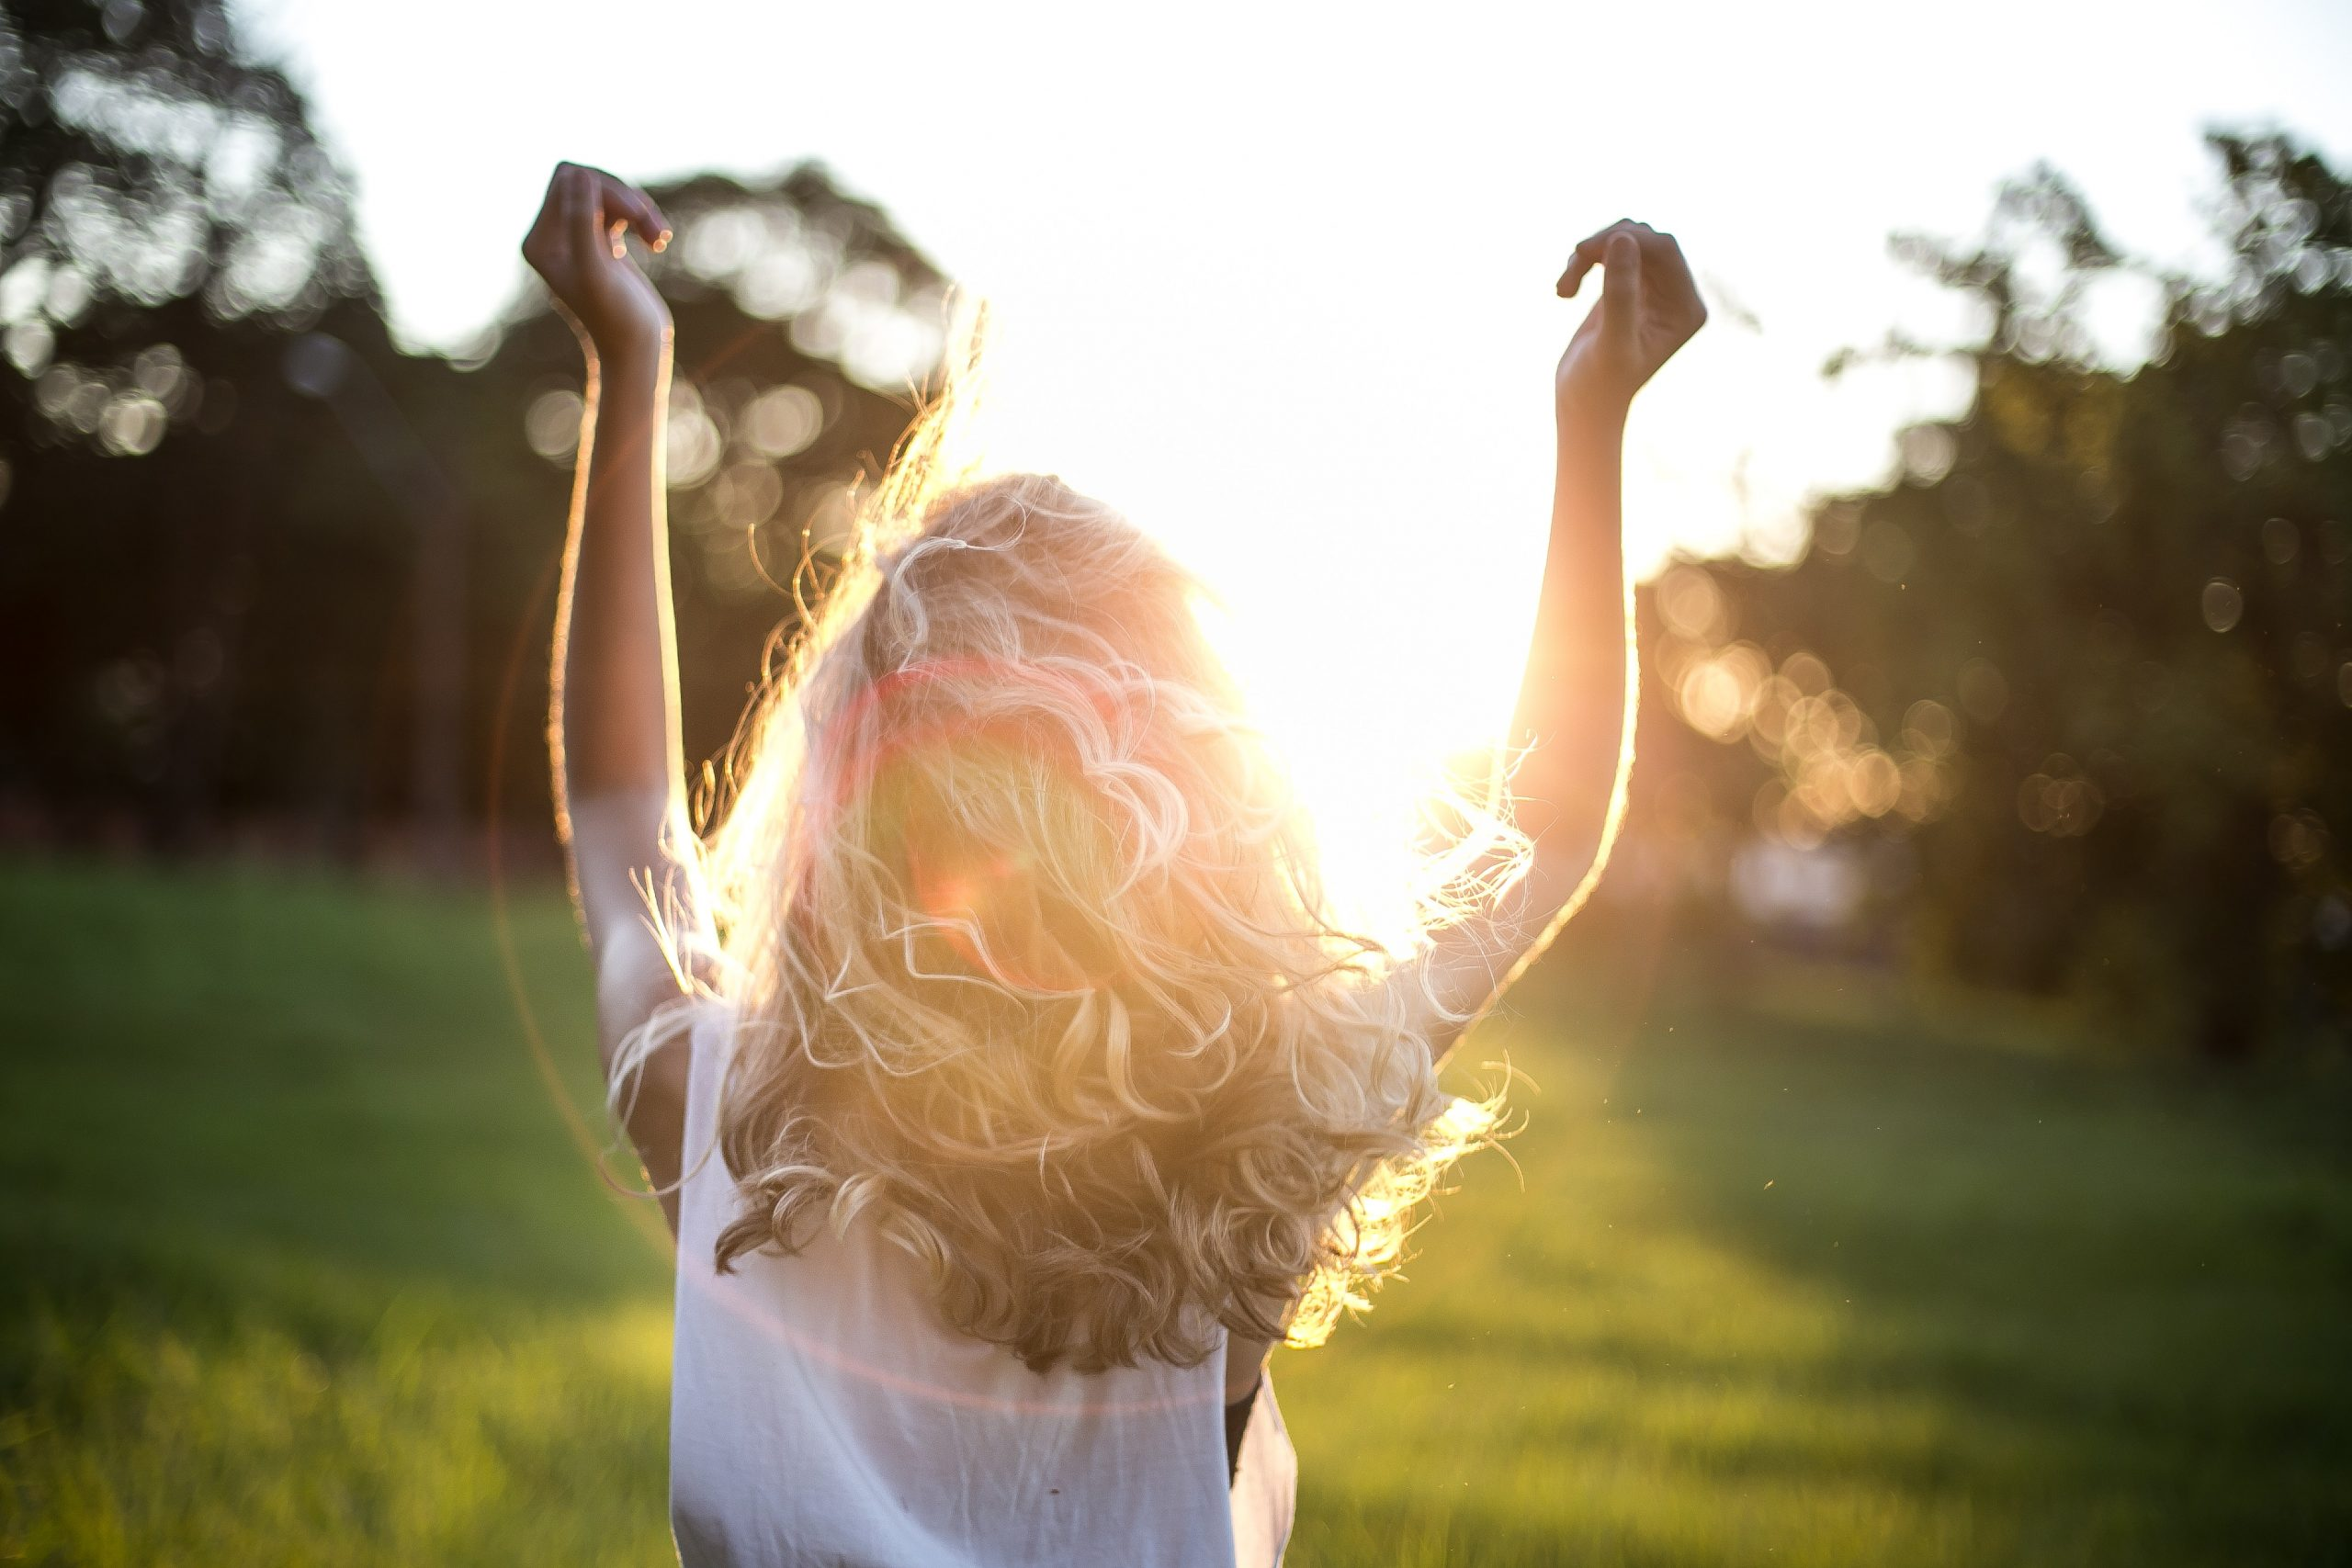 Curly blonde haired woman in the sun